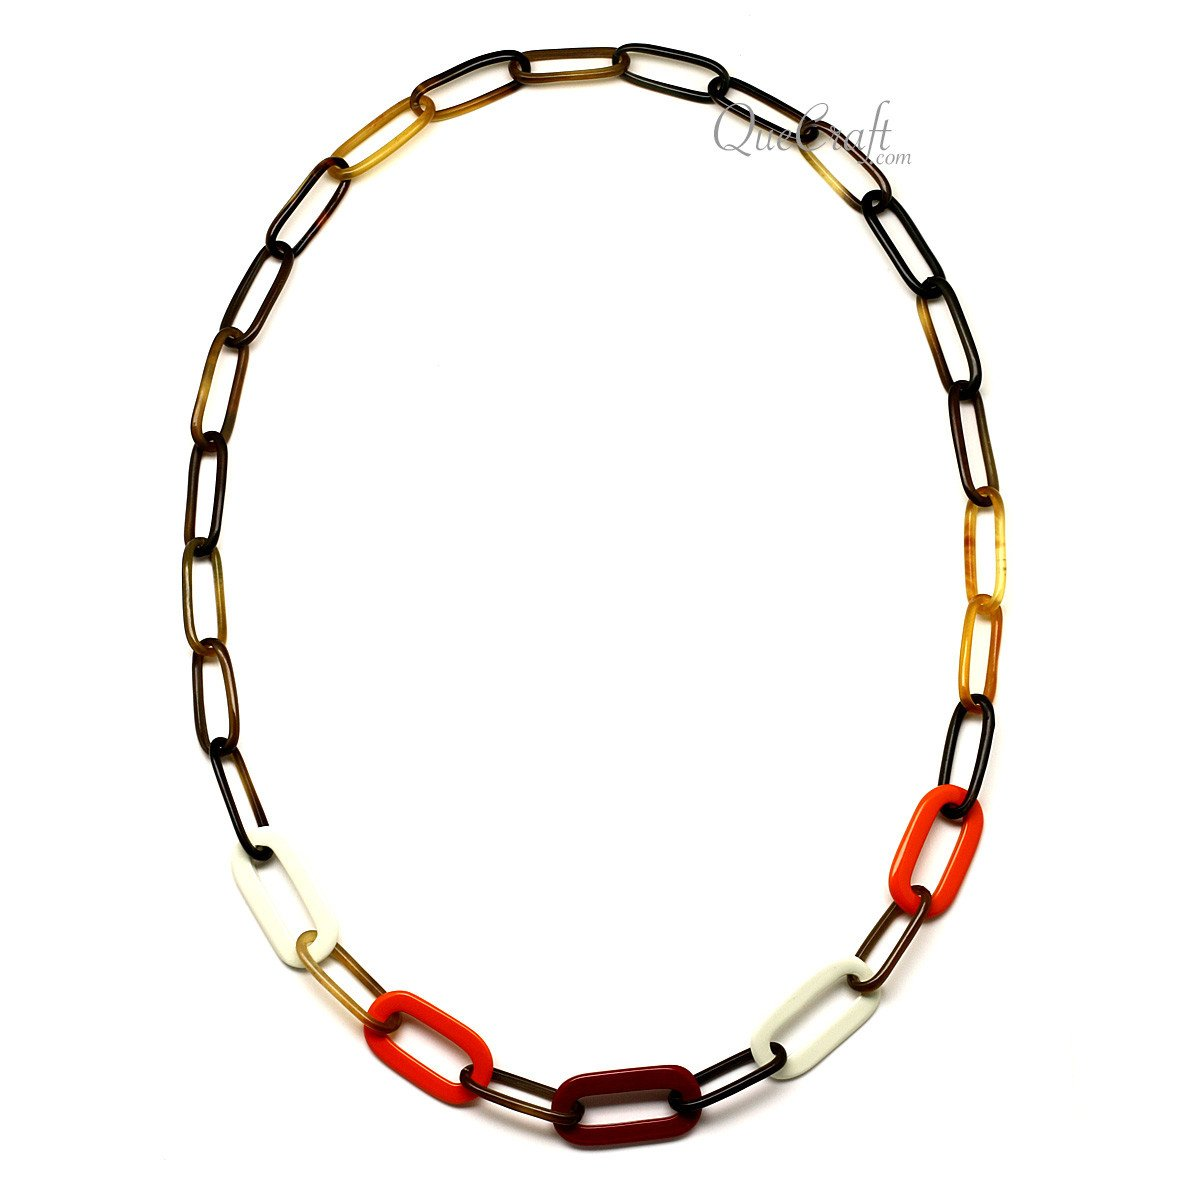 Horn & Lacquer Chain Necklace #12635 - HORN.JEWELRY by QueCraft